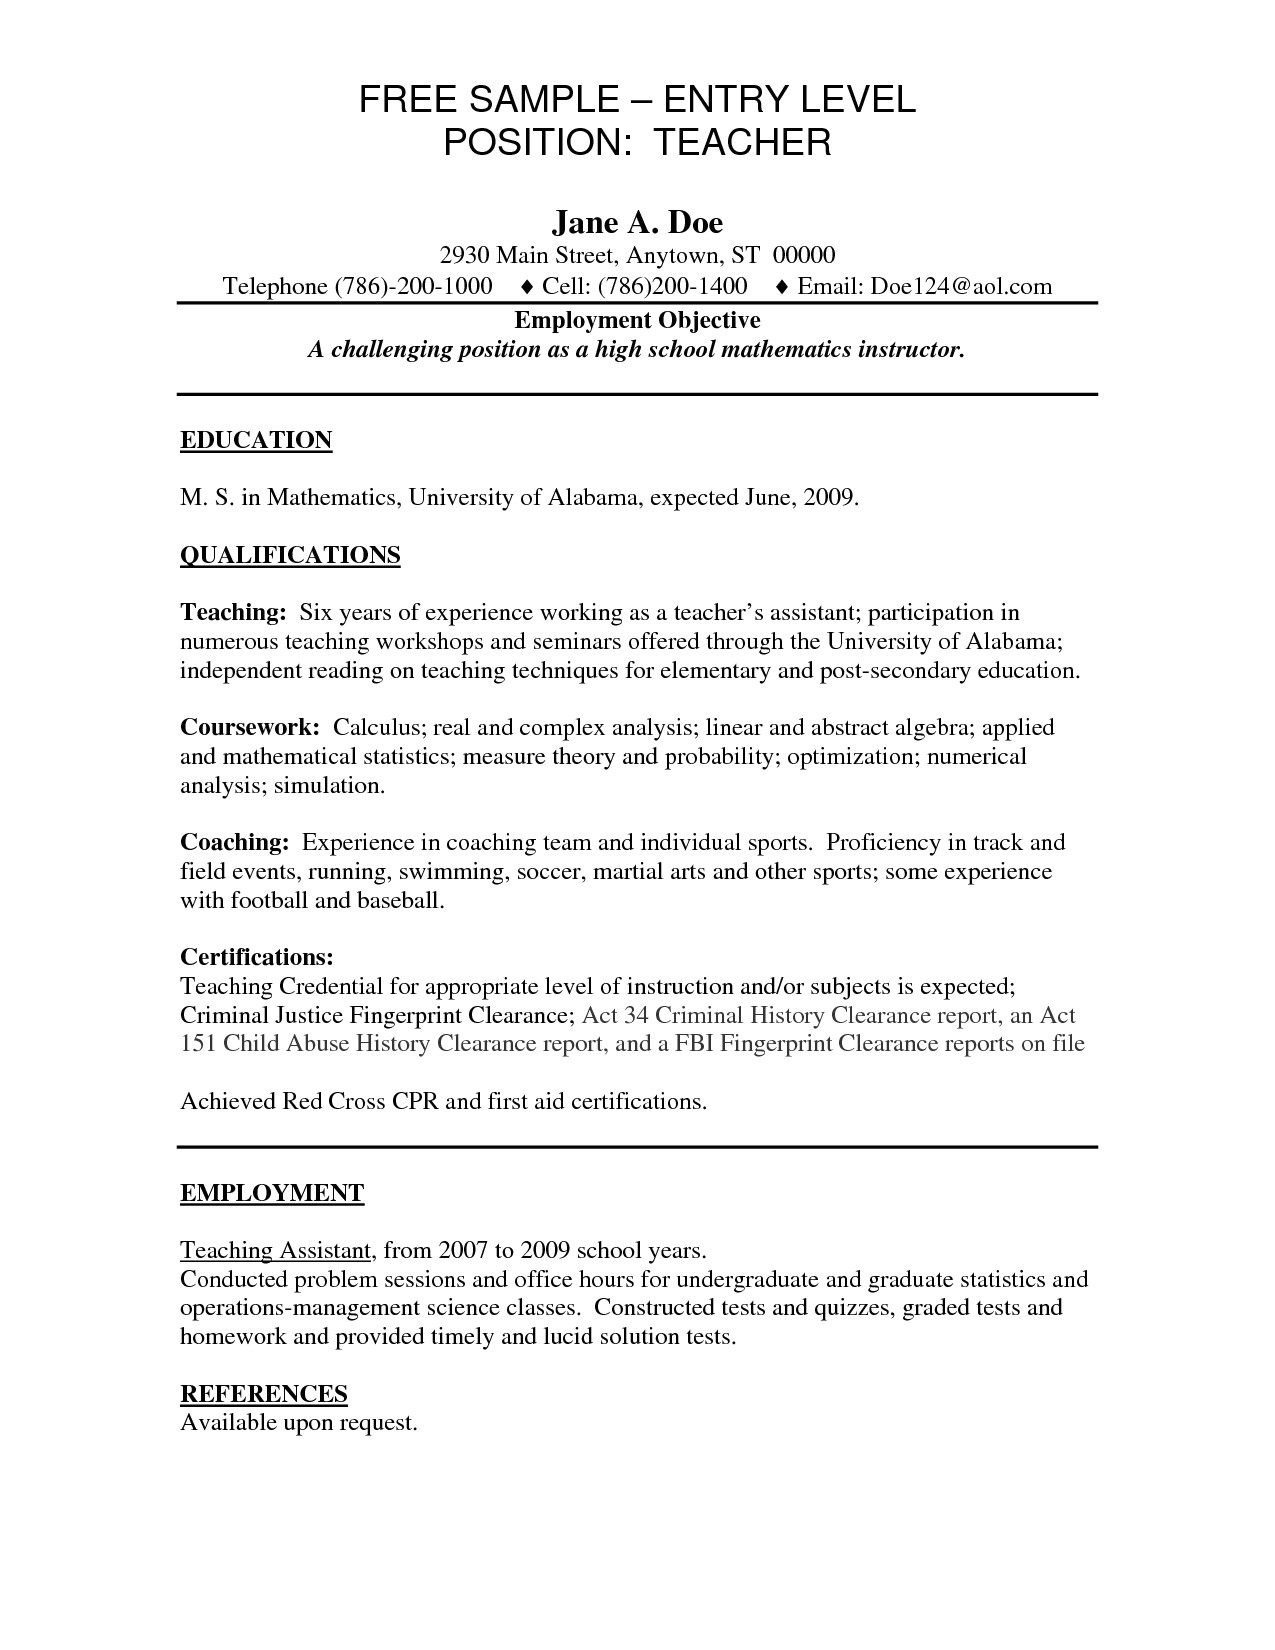 Resume Samples for Entry Level Positions Entry Level It Job Resume Resume Ideas